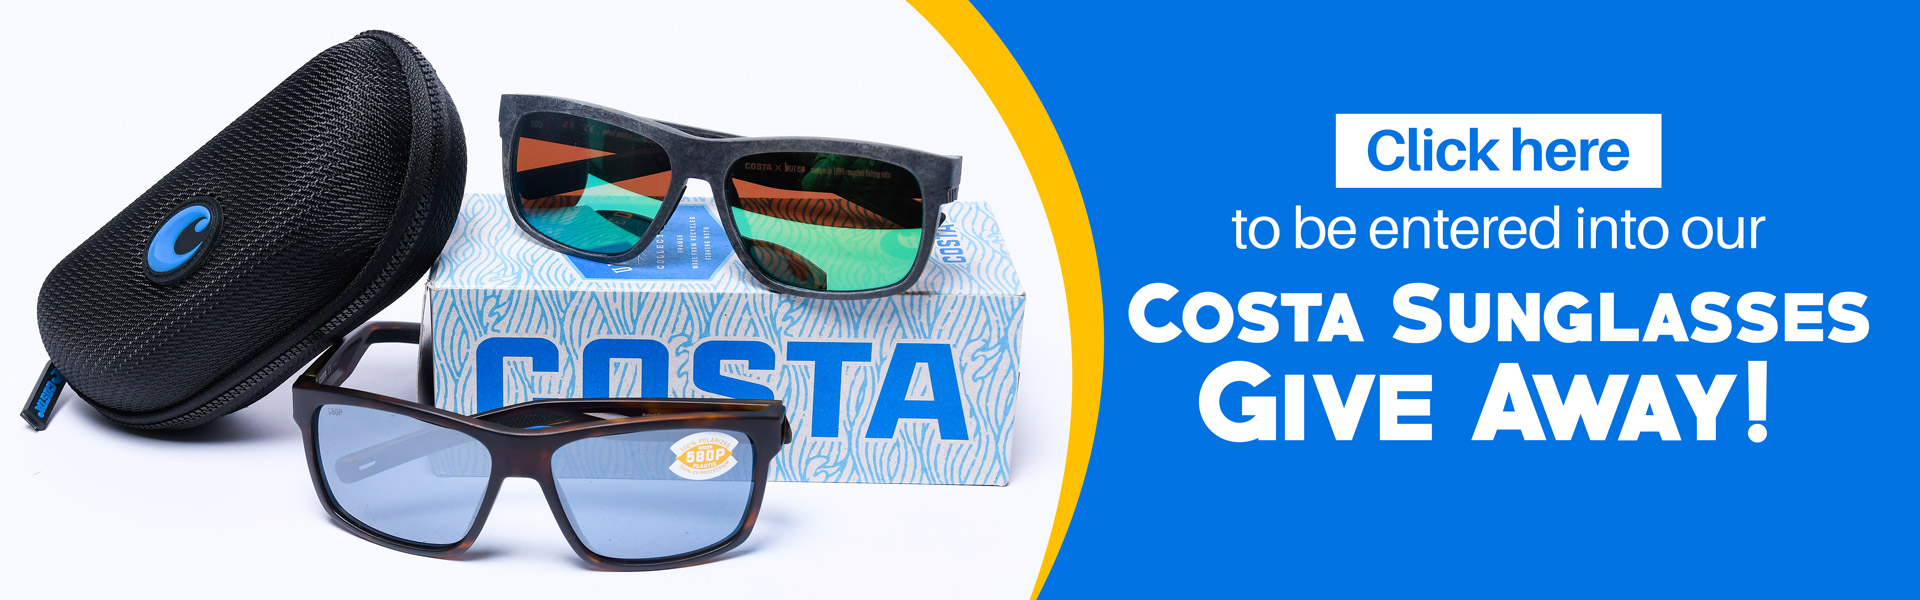 Hook and Barrel - Costa Sunglasses Give Away